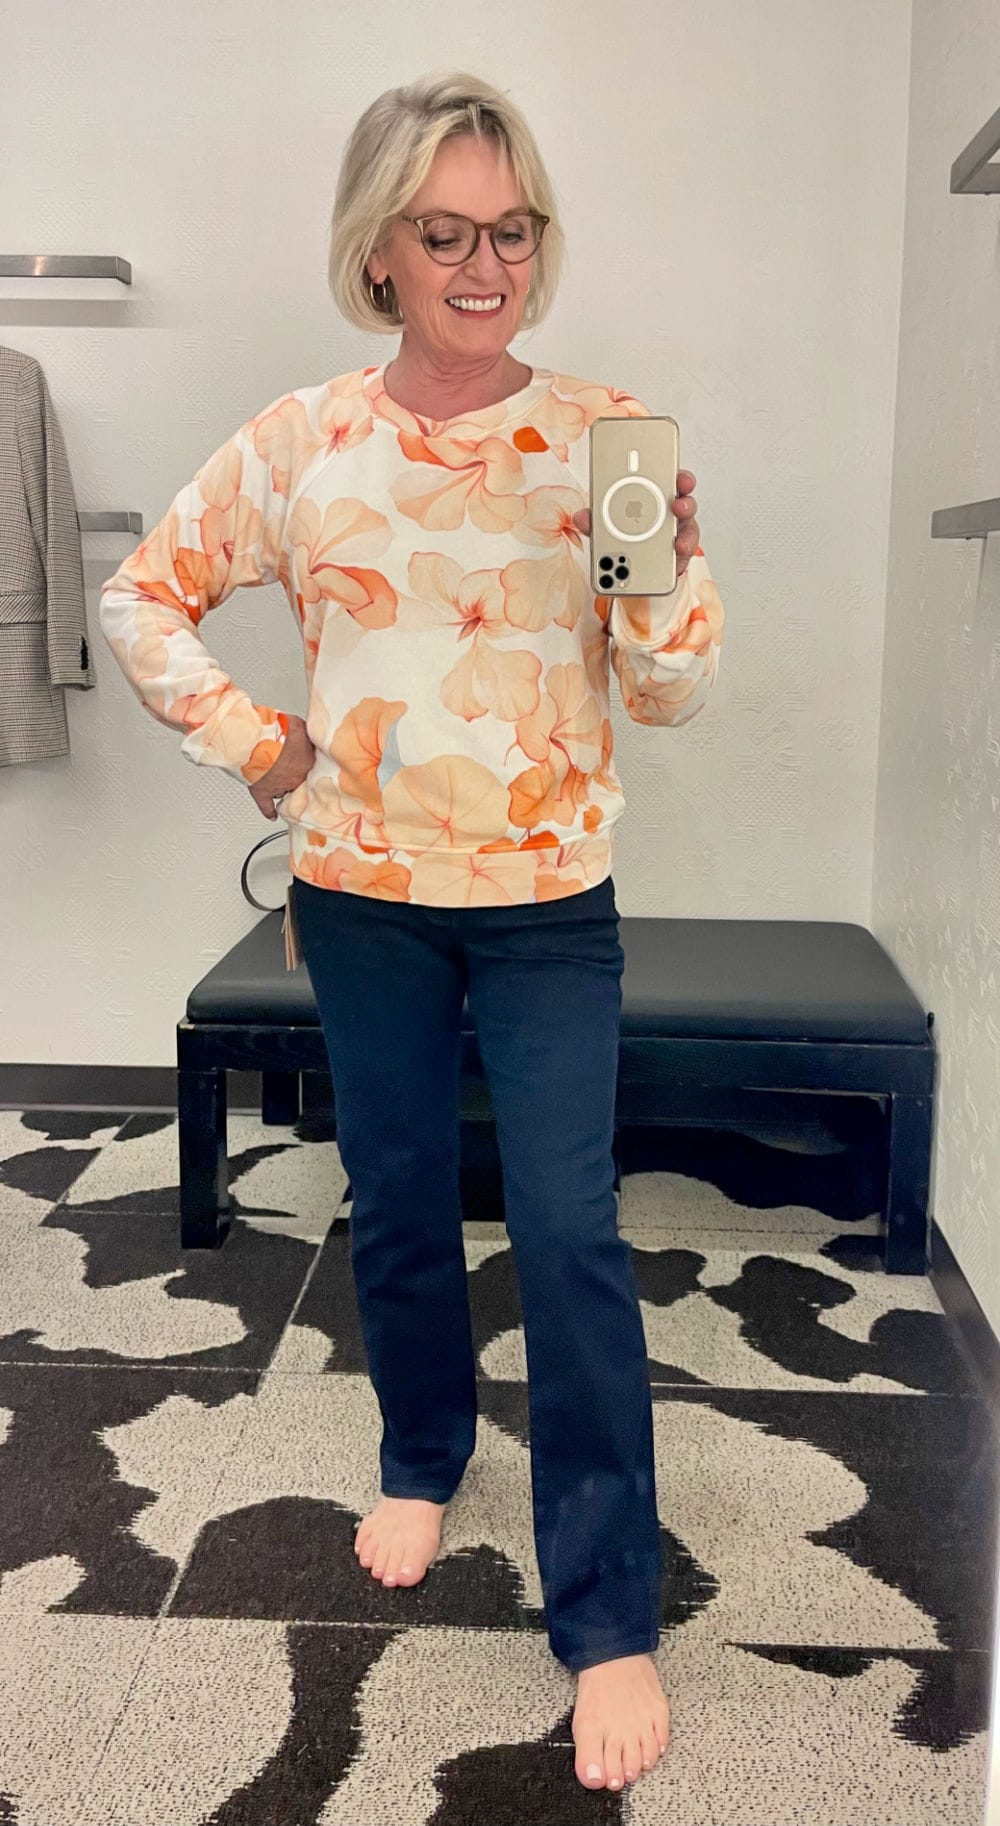 straight jeans and colorful sweatershirt on over 50 blogger in dressing room selfie